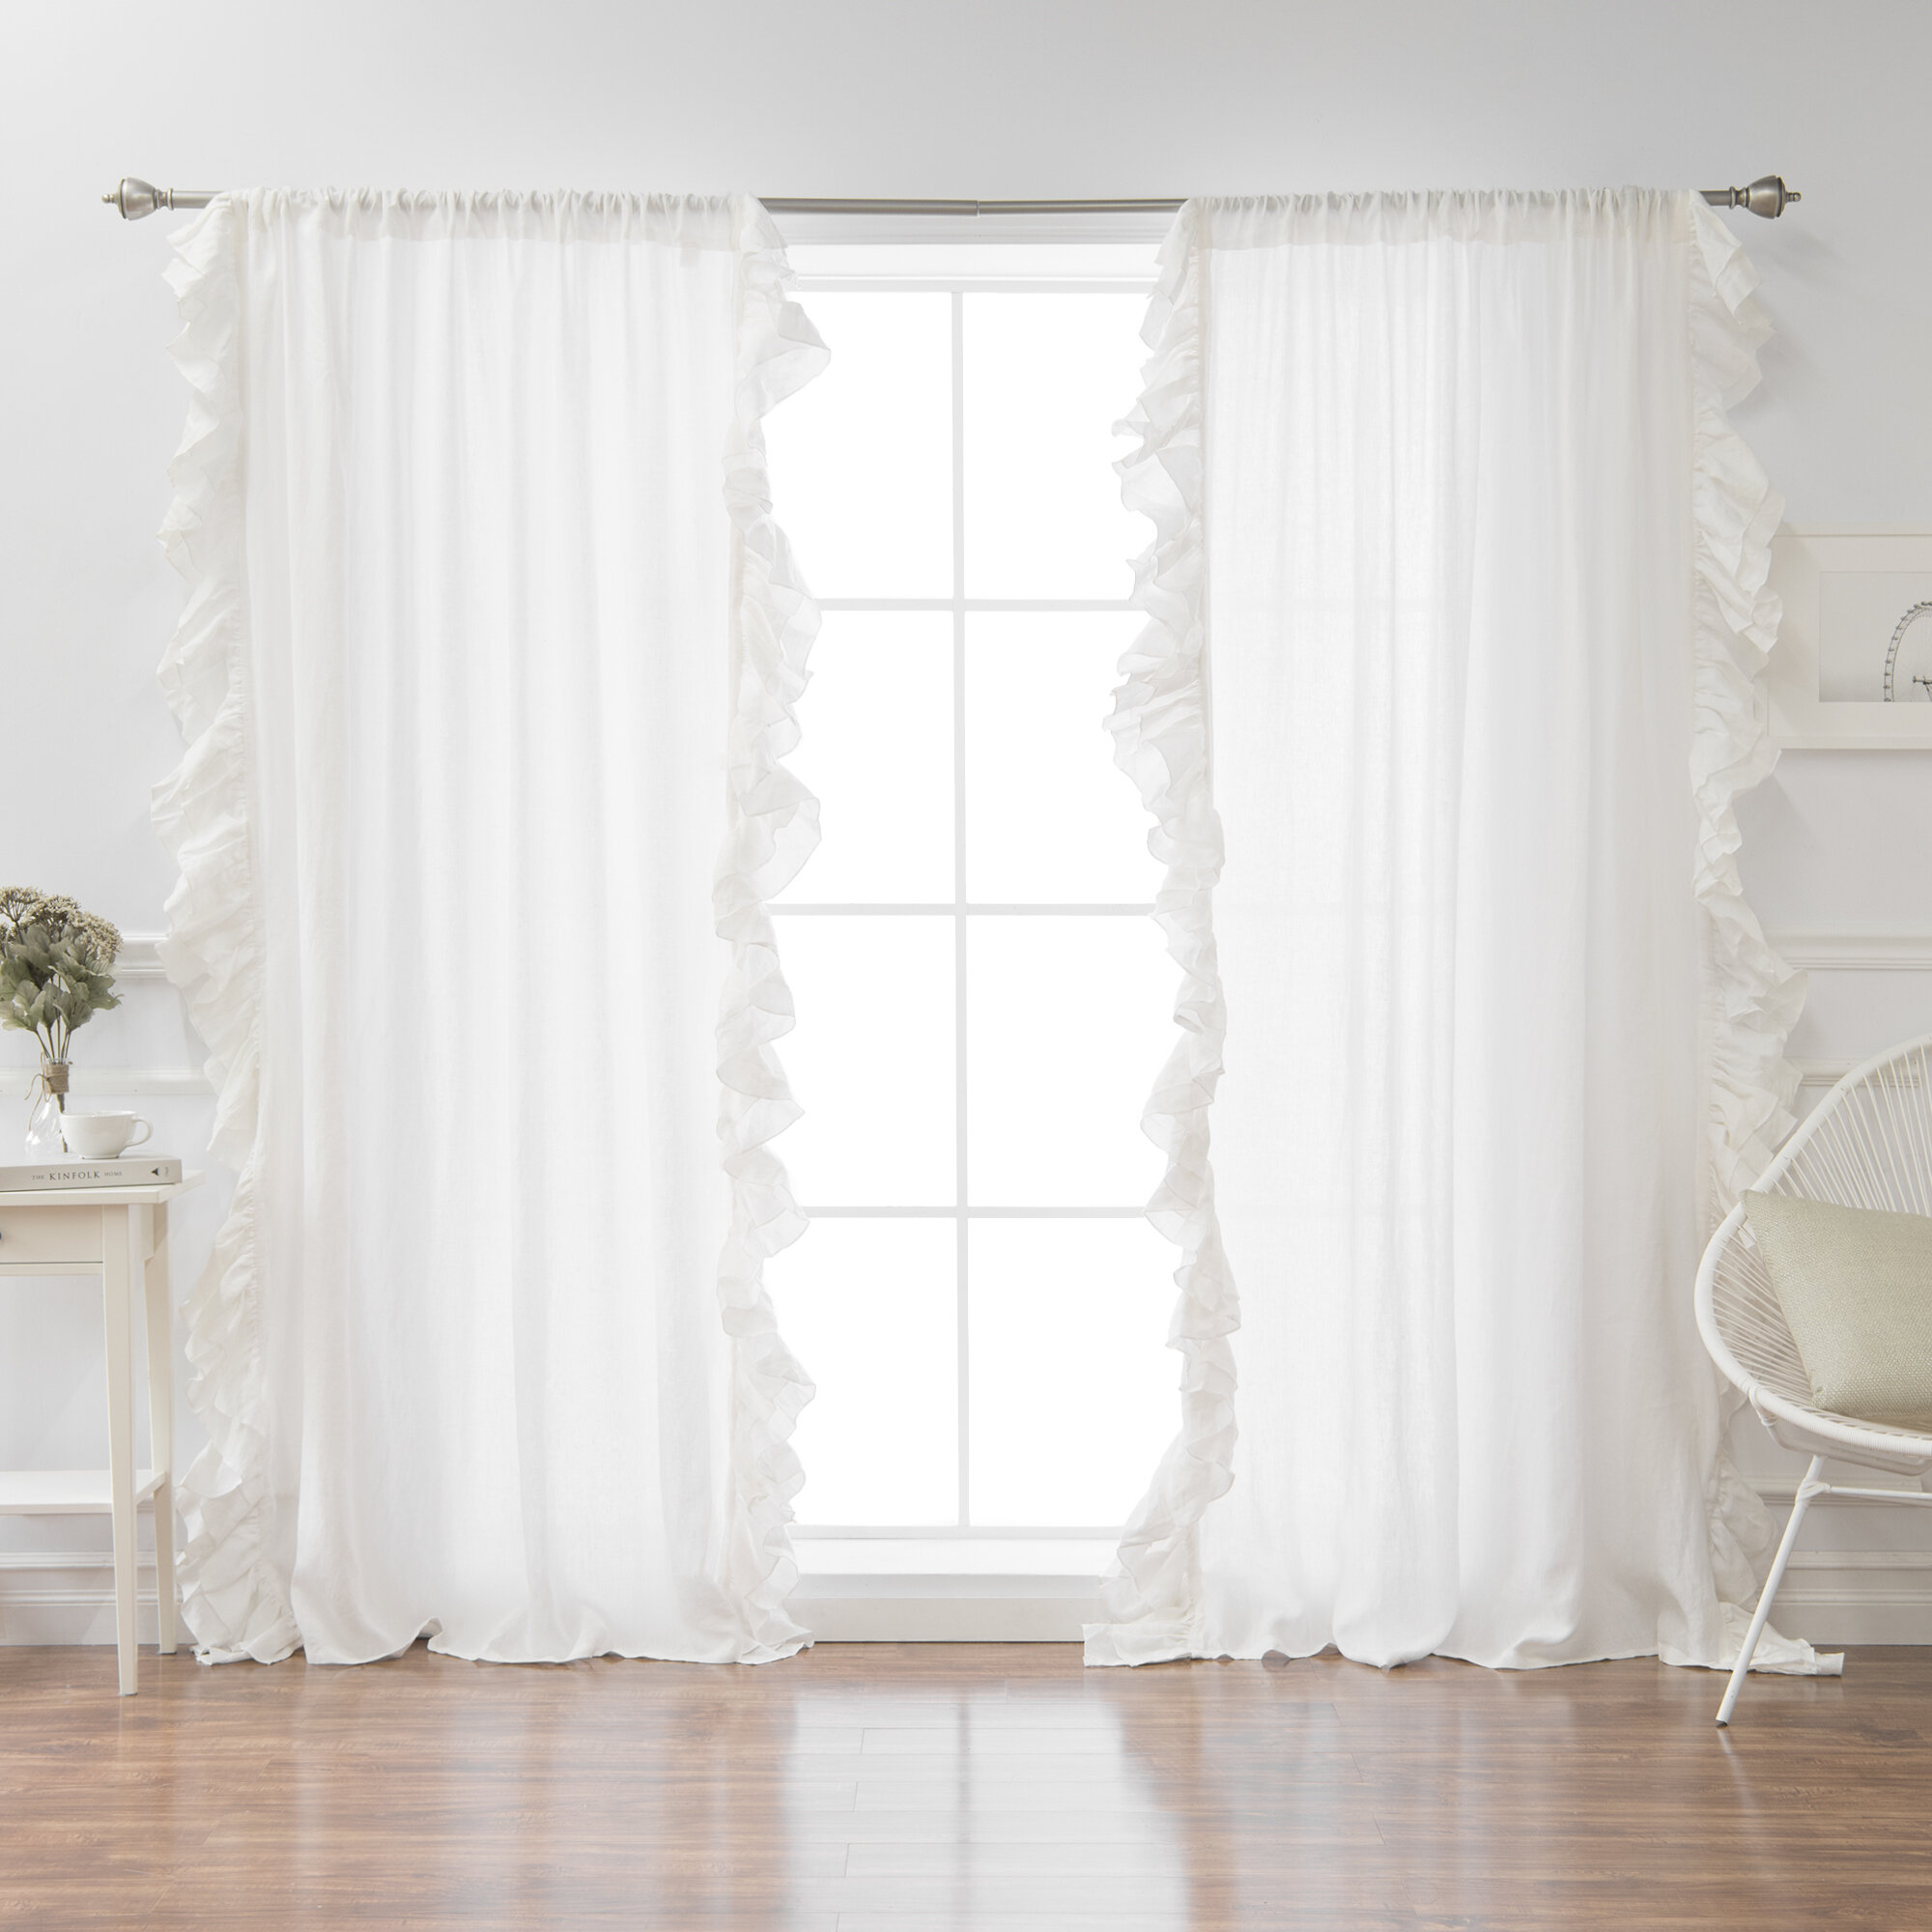 ruffled gypsy voile sheer curtain panel designs ruffle curtains treatment v window